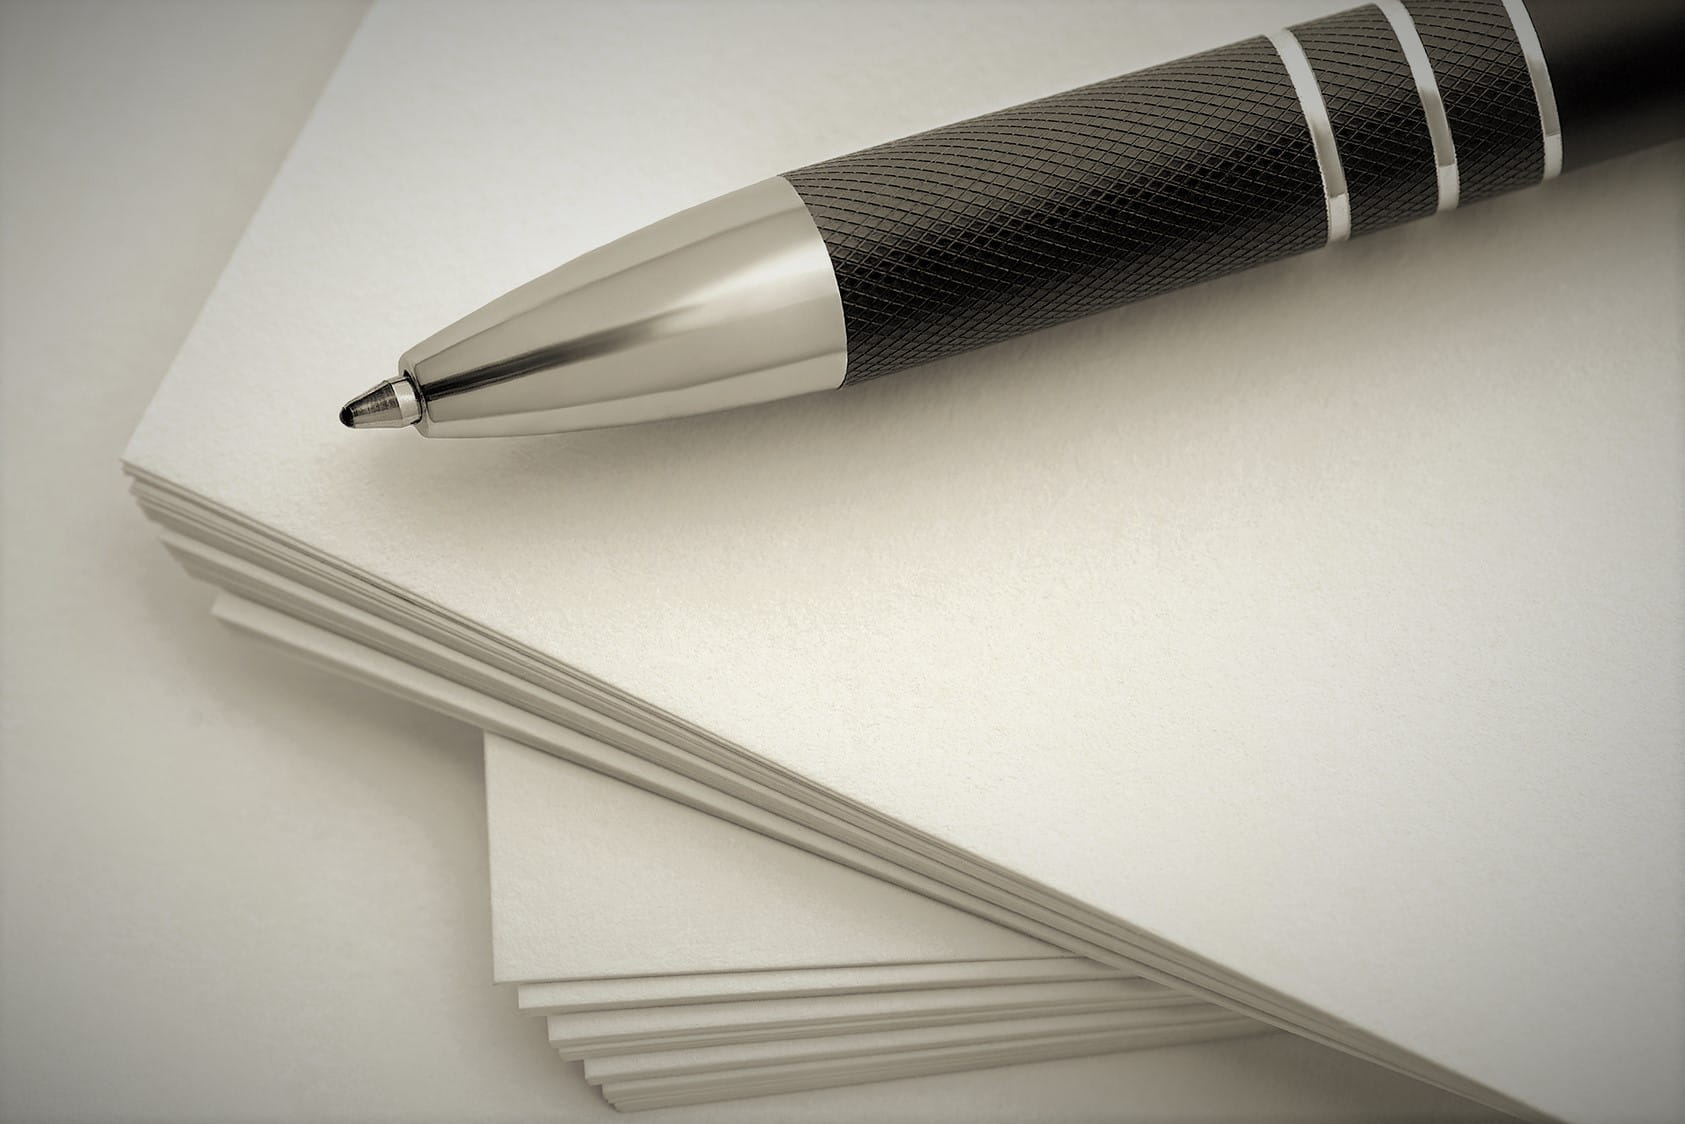 pen laying on stack of papers